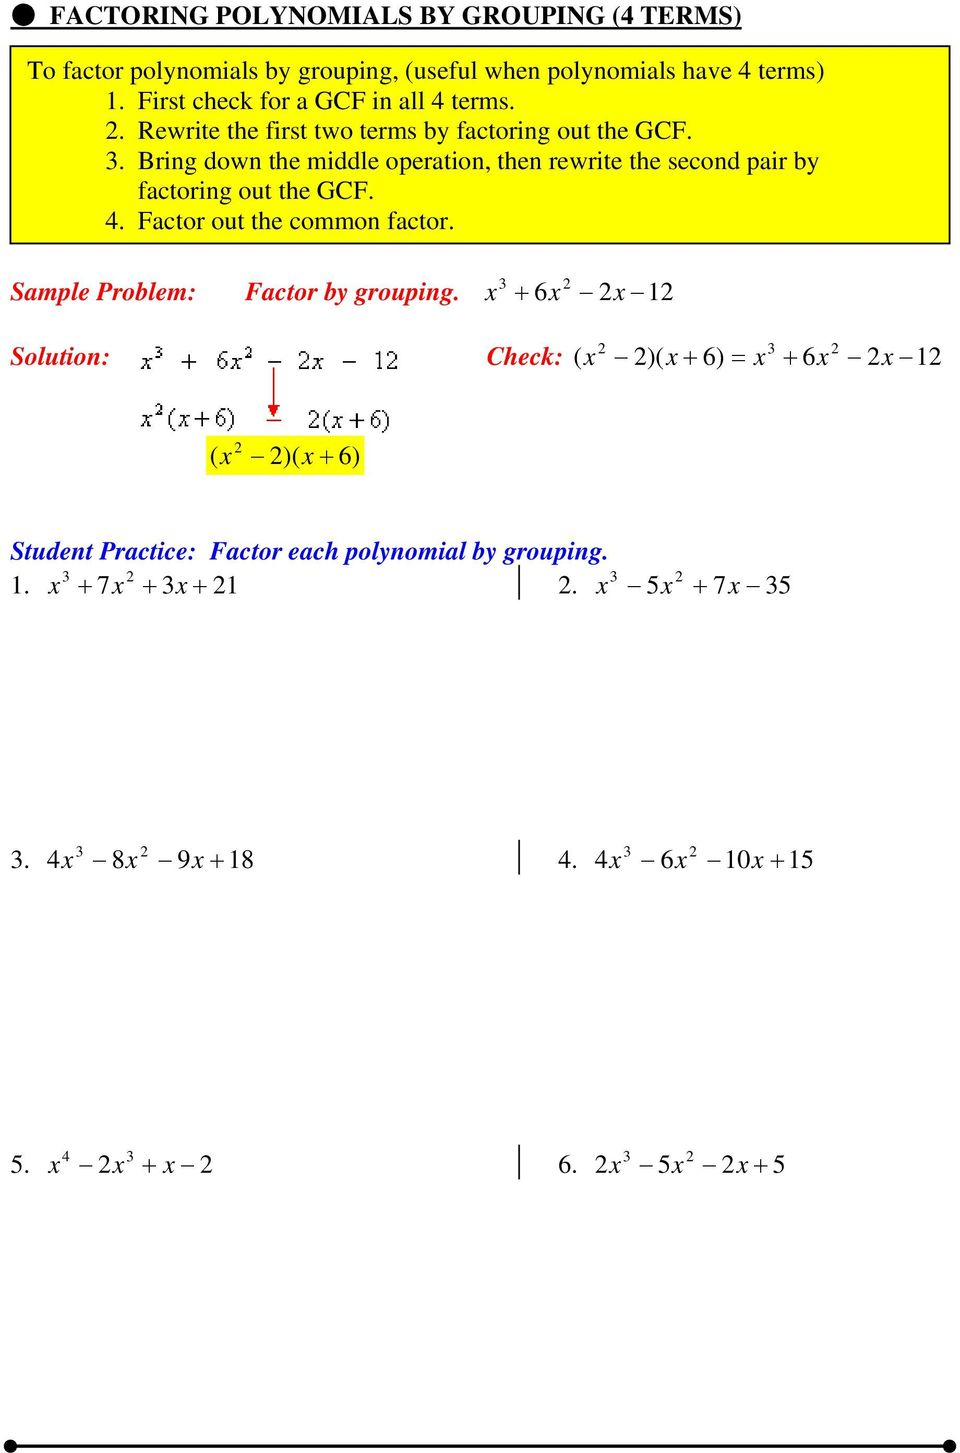 Bring down the middle operation, then rewrite the second pair by factoring out the GCF. 4. Factor out the common factor.